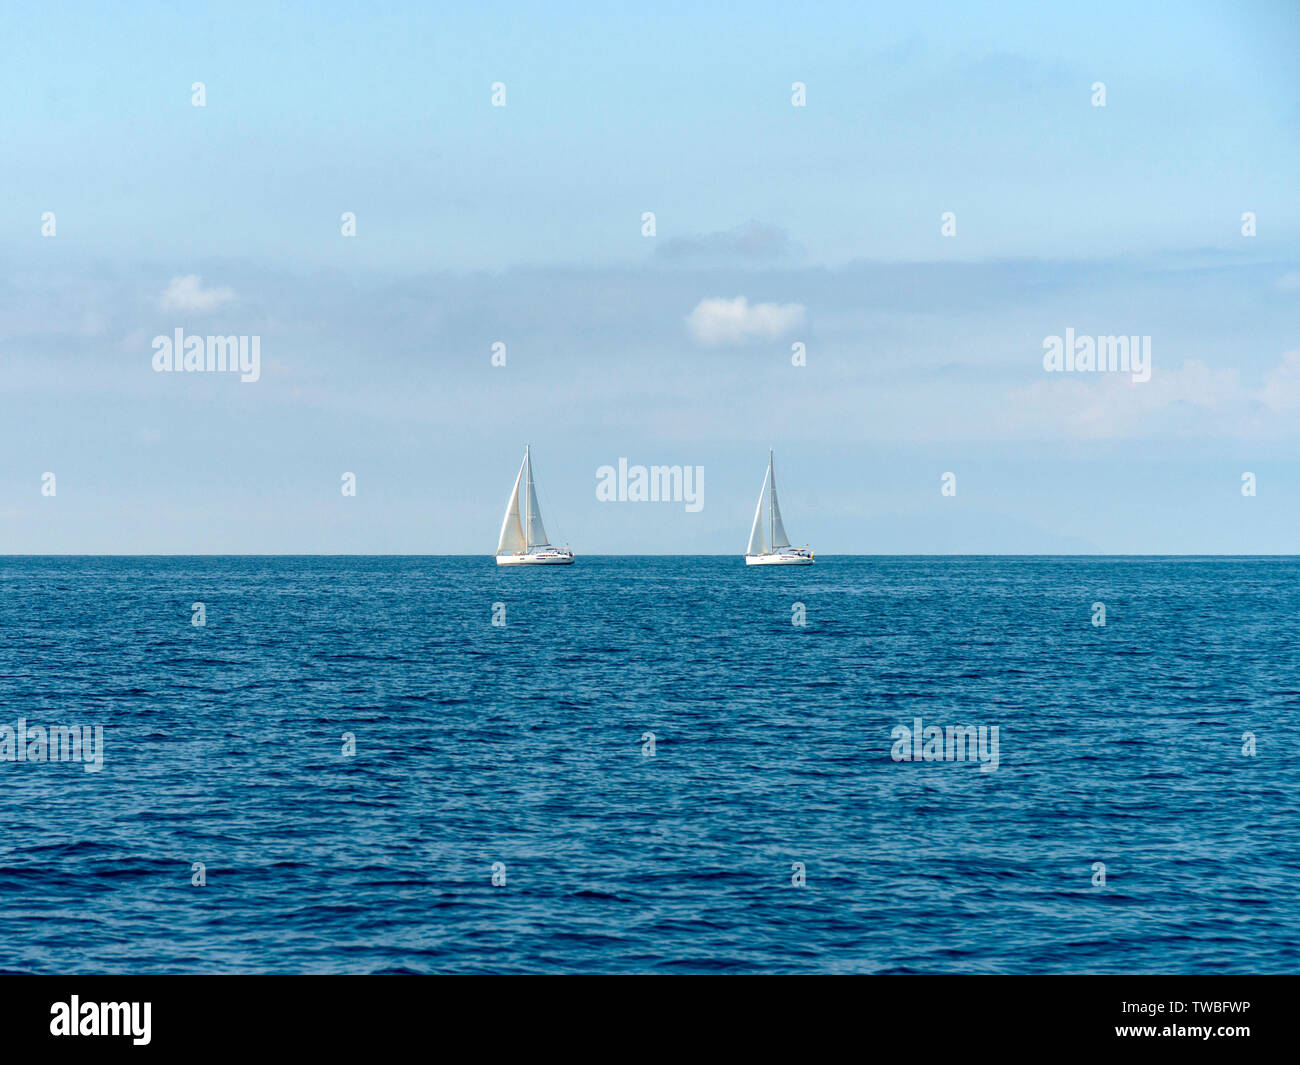 Two sailing yachts on the ocean - Stock Image